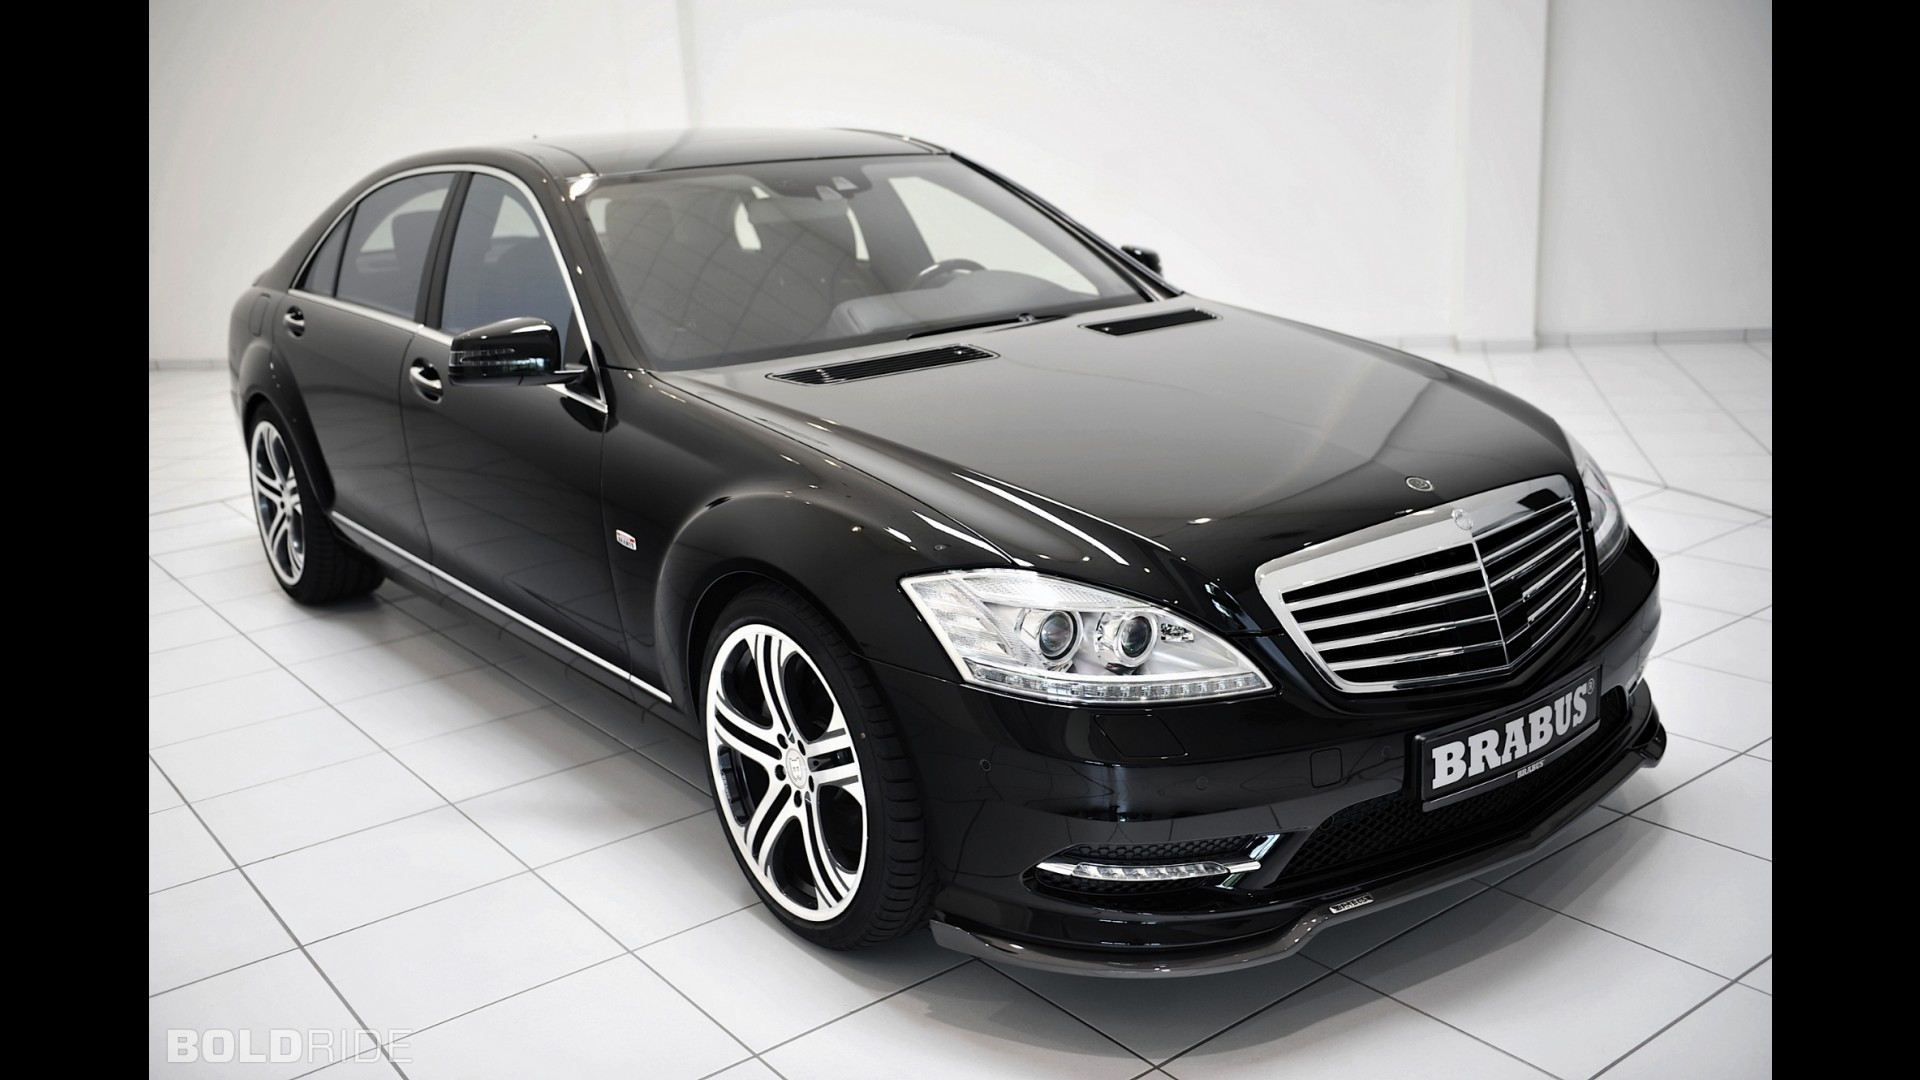 Brabus mercedes benz s class amg for Mercedes benz amg s class